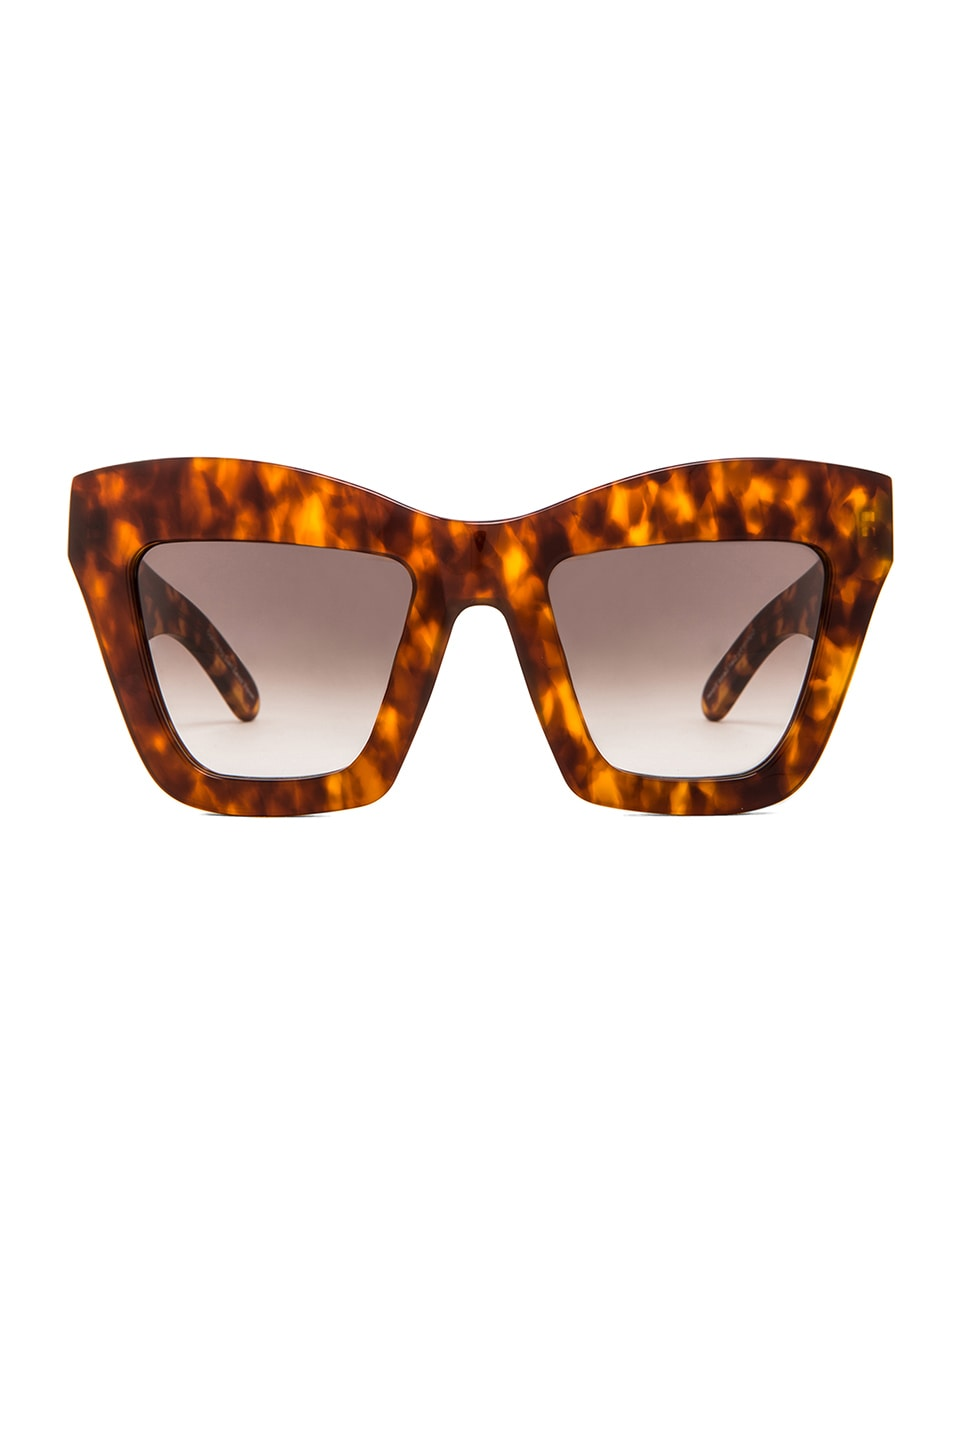 VALLEY EYEWEAR Tenz in Light Tort & Brown Gradient